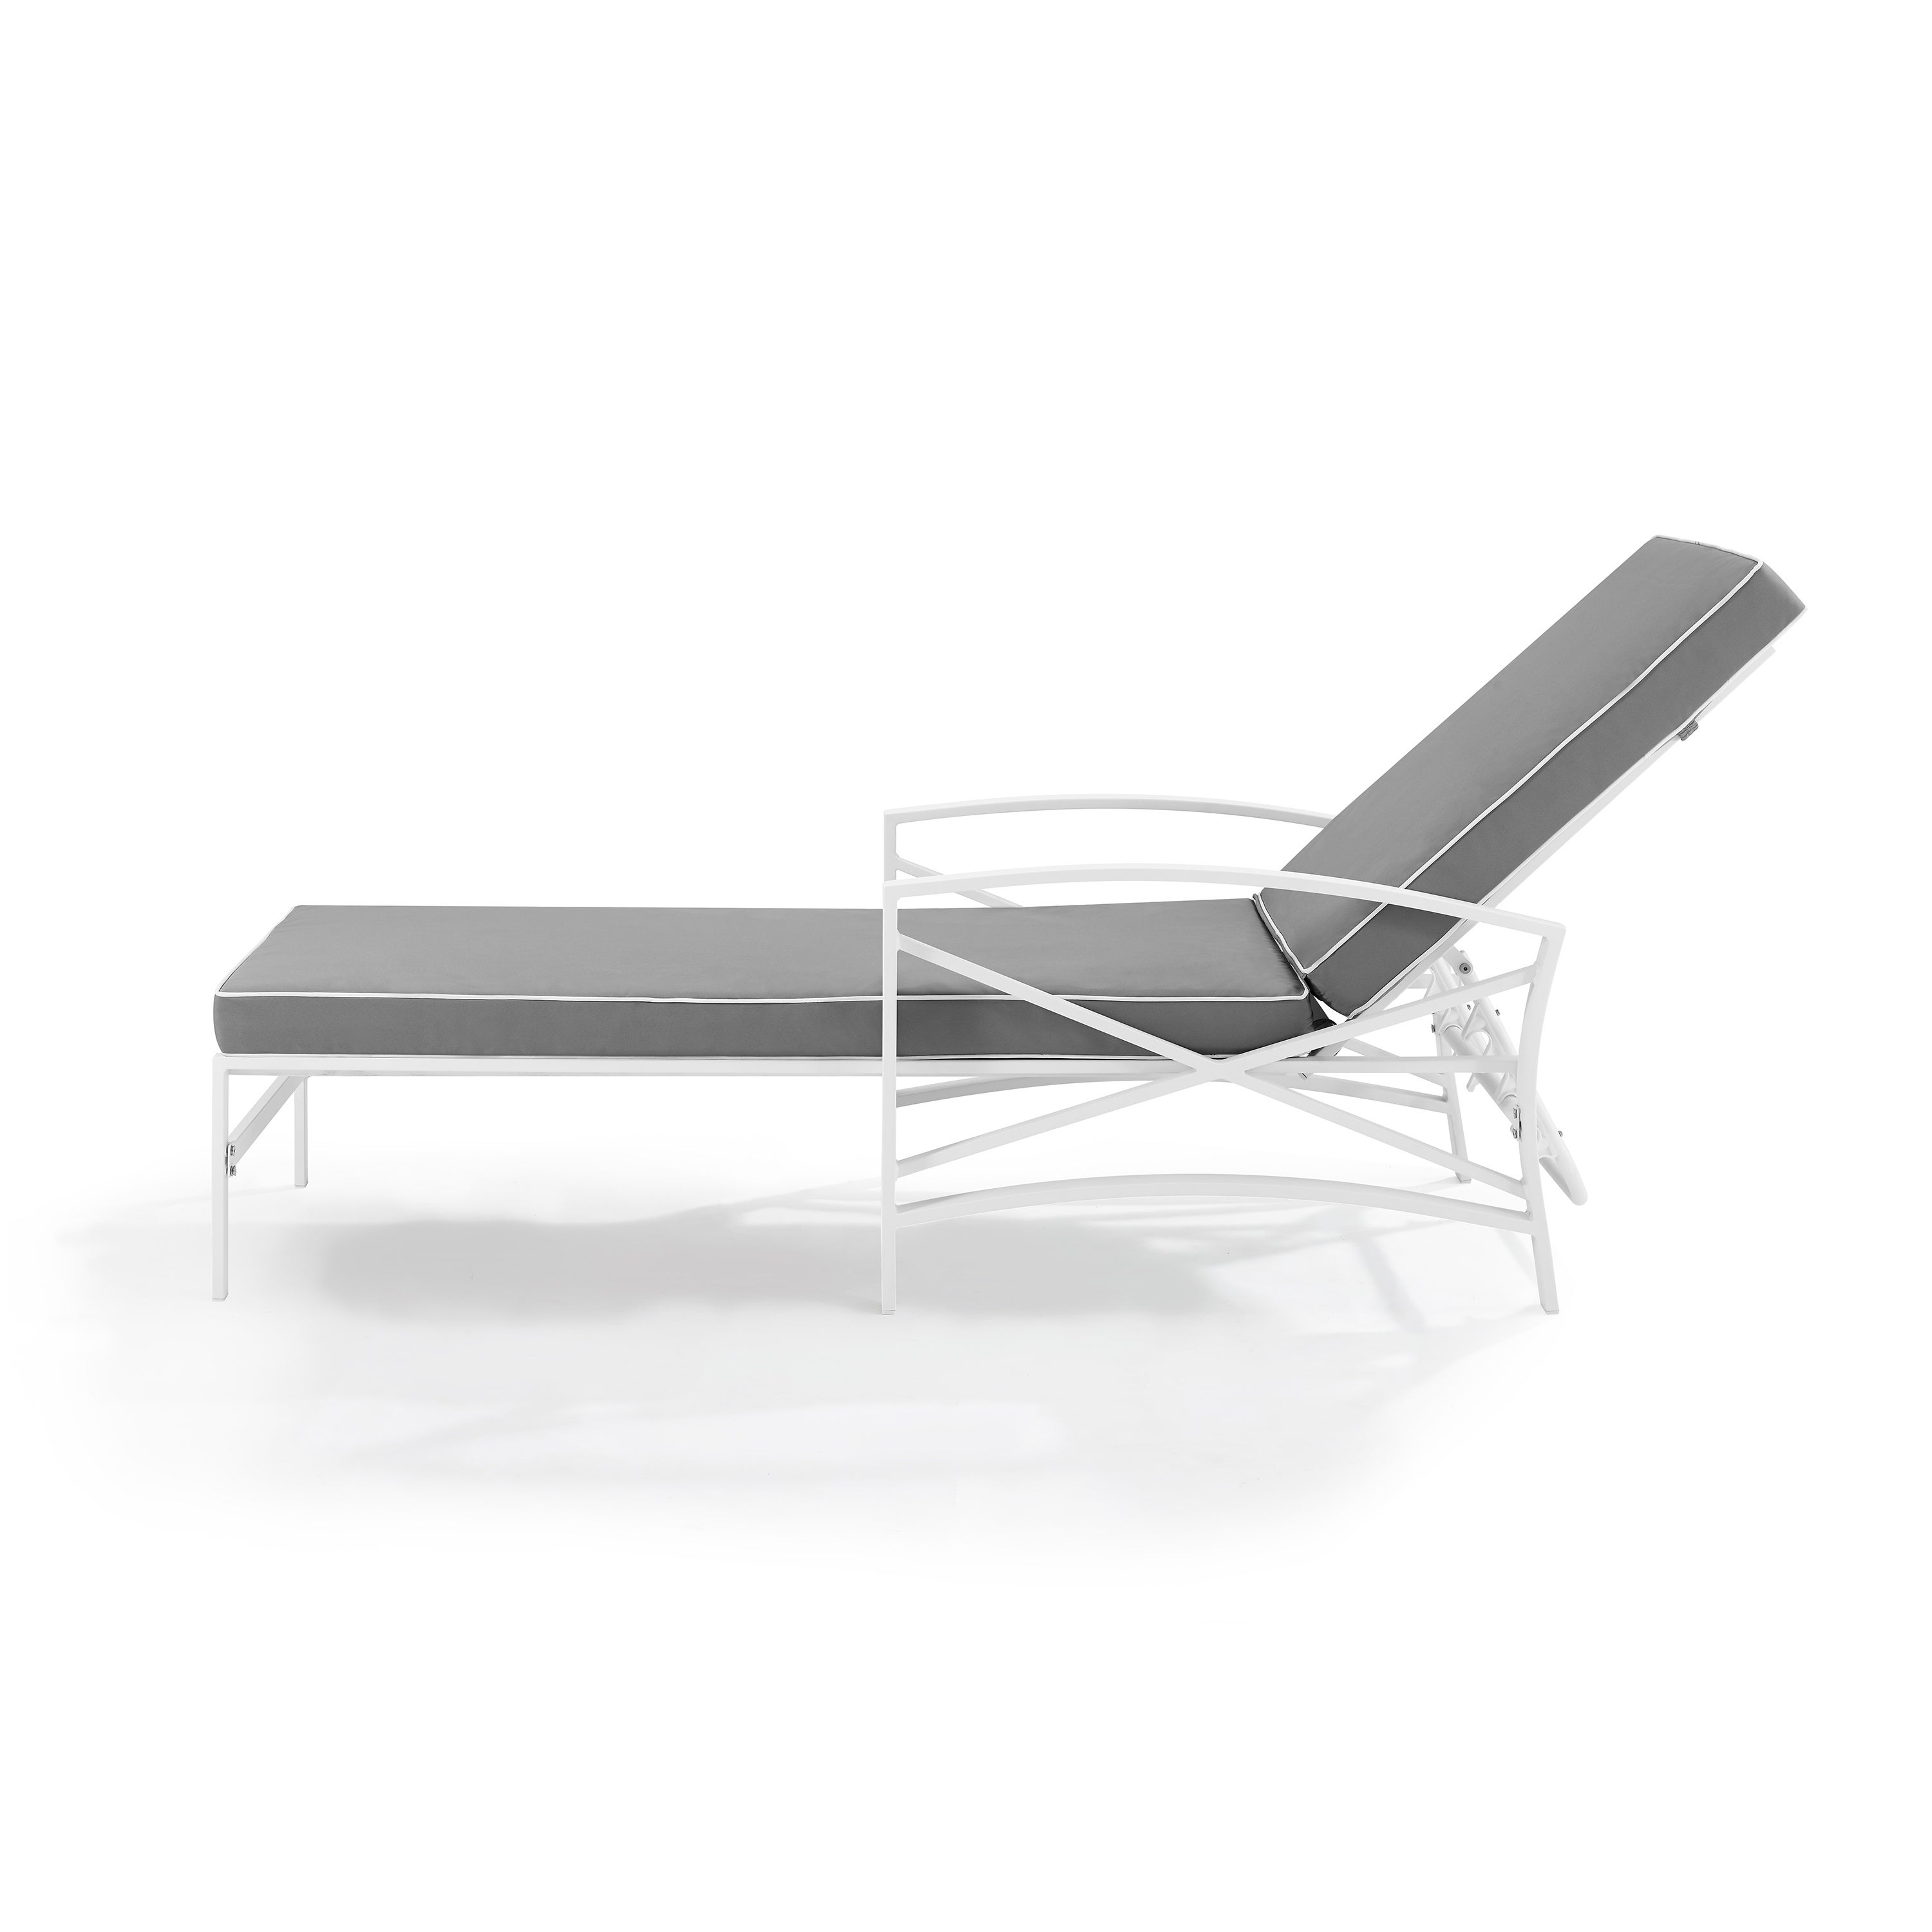 Havenside Home Davis Chaise Lounge Chair In White With Grey Cushions In 2019 Lounge Chairs In White With Grey Cushions (View 5 of 25)